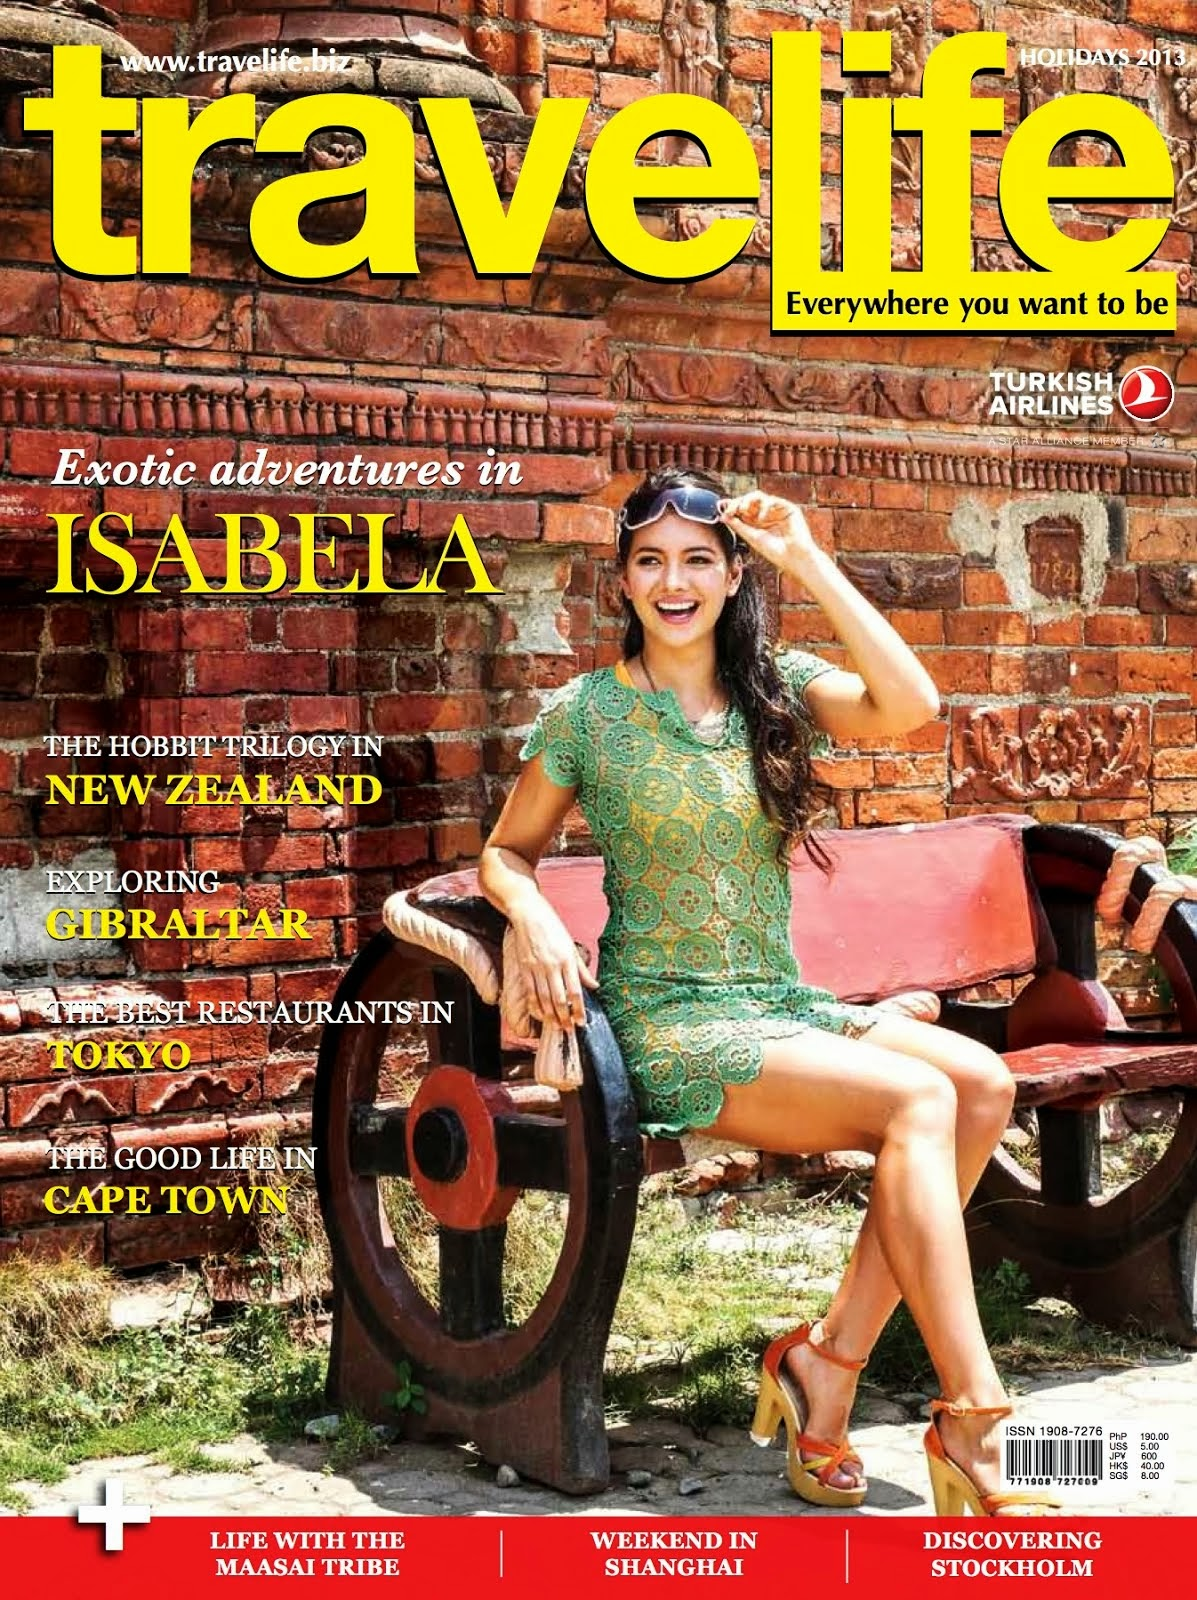 TRAVELIFE'S HOLIDAY 2013 ISSUE